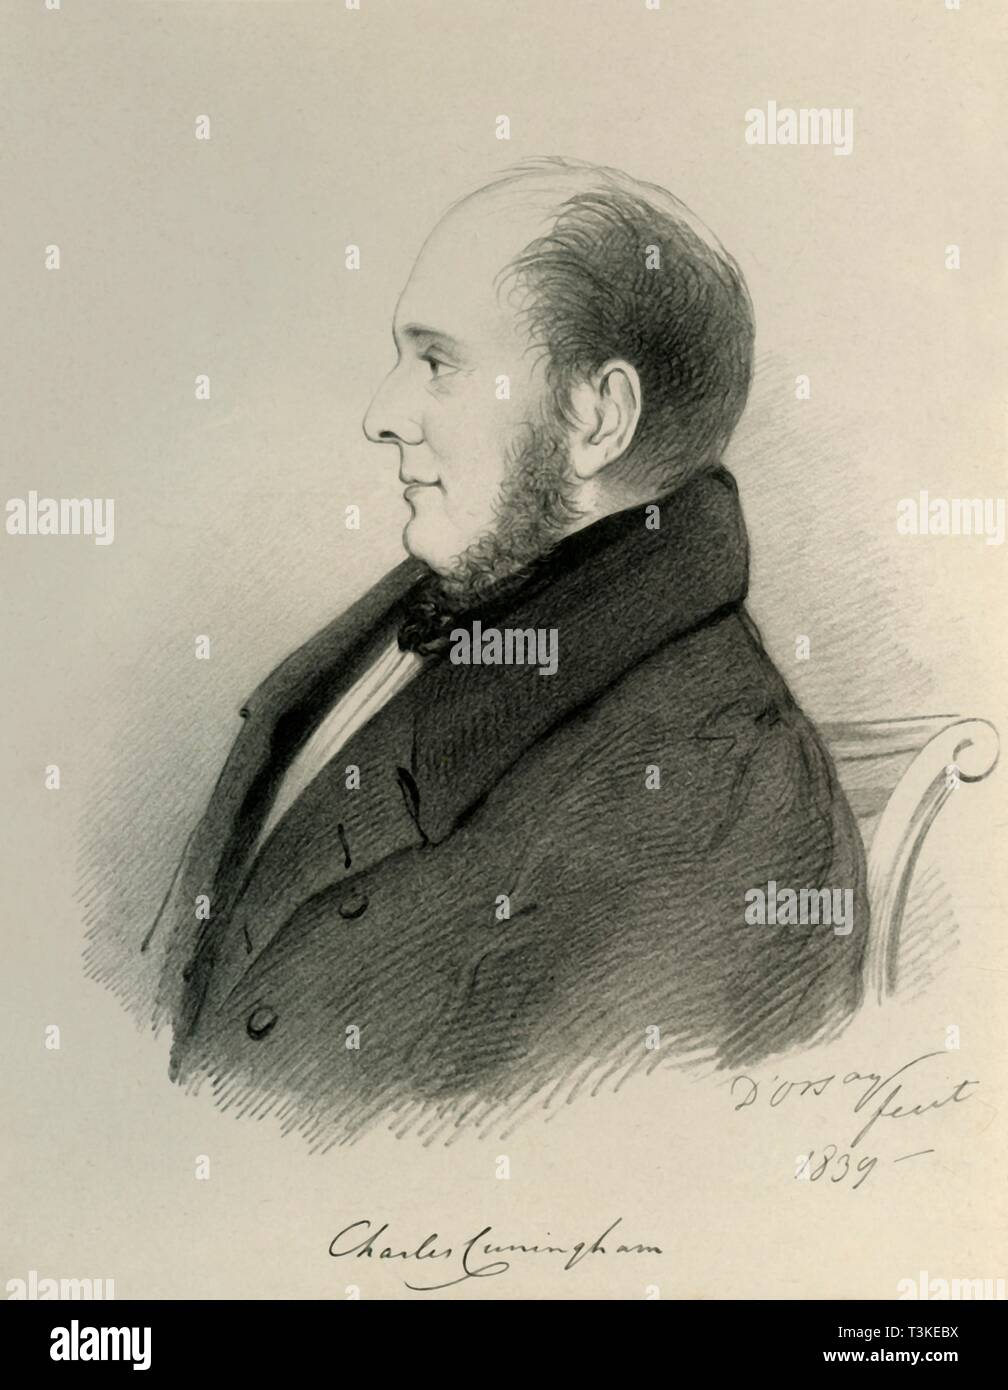 'Charles Cunningham', 1839. Creator: Alfred d'Orsay. - Stock Image